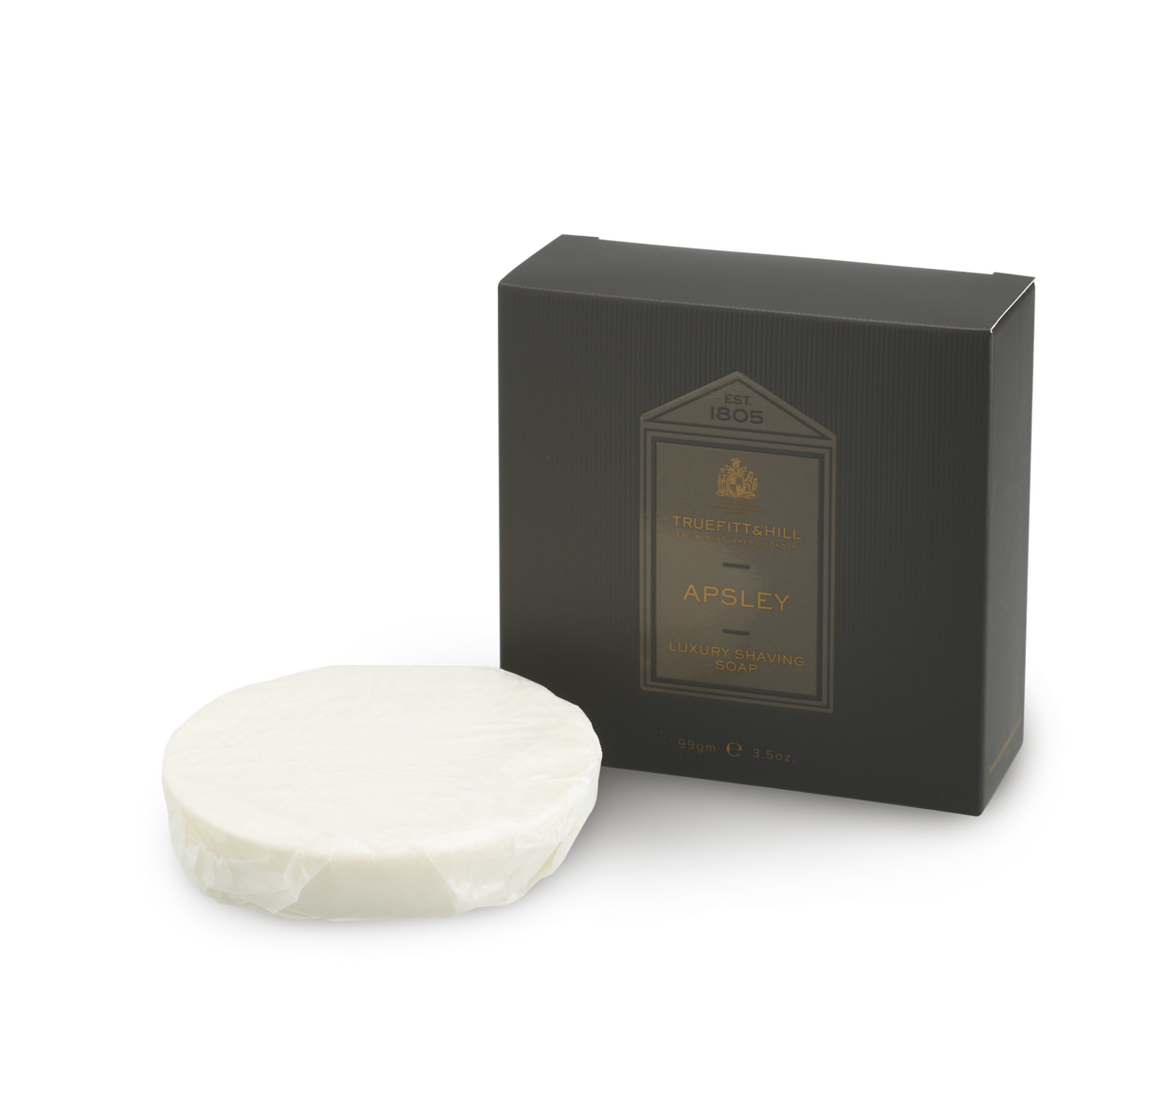 Apsley Luxury Shaving Soap Refill for Wooden Bowl